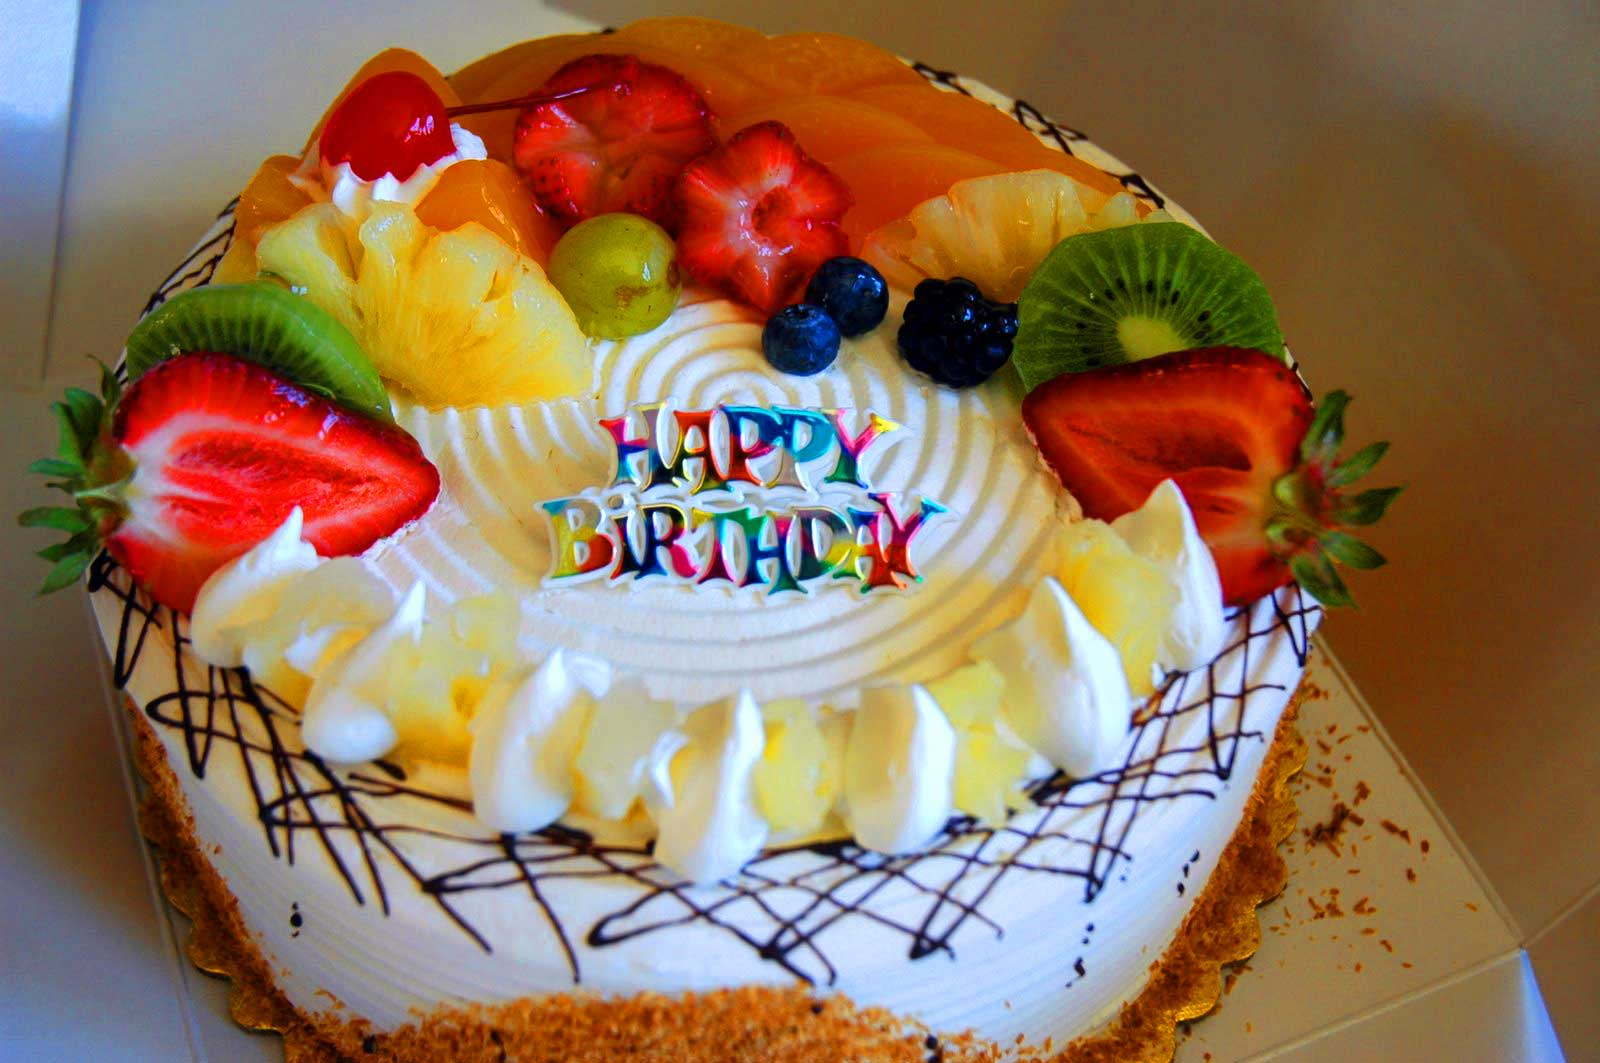 Gambar Pesawahan Happy Birthday Images Cake